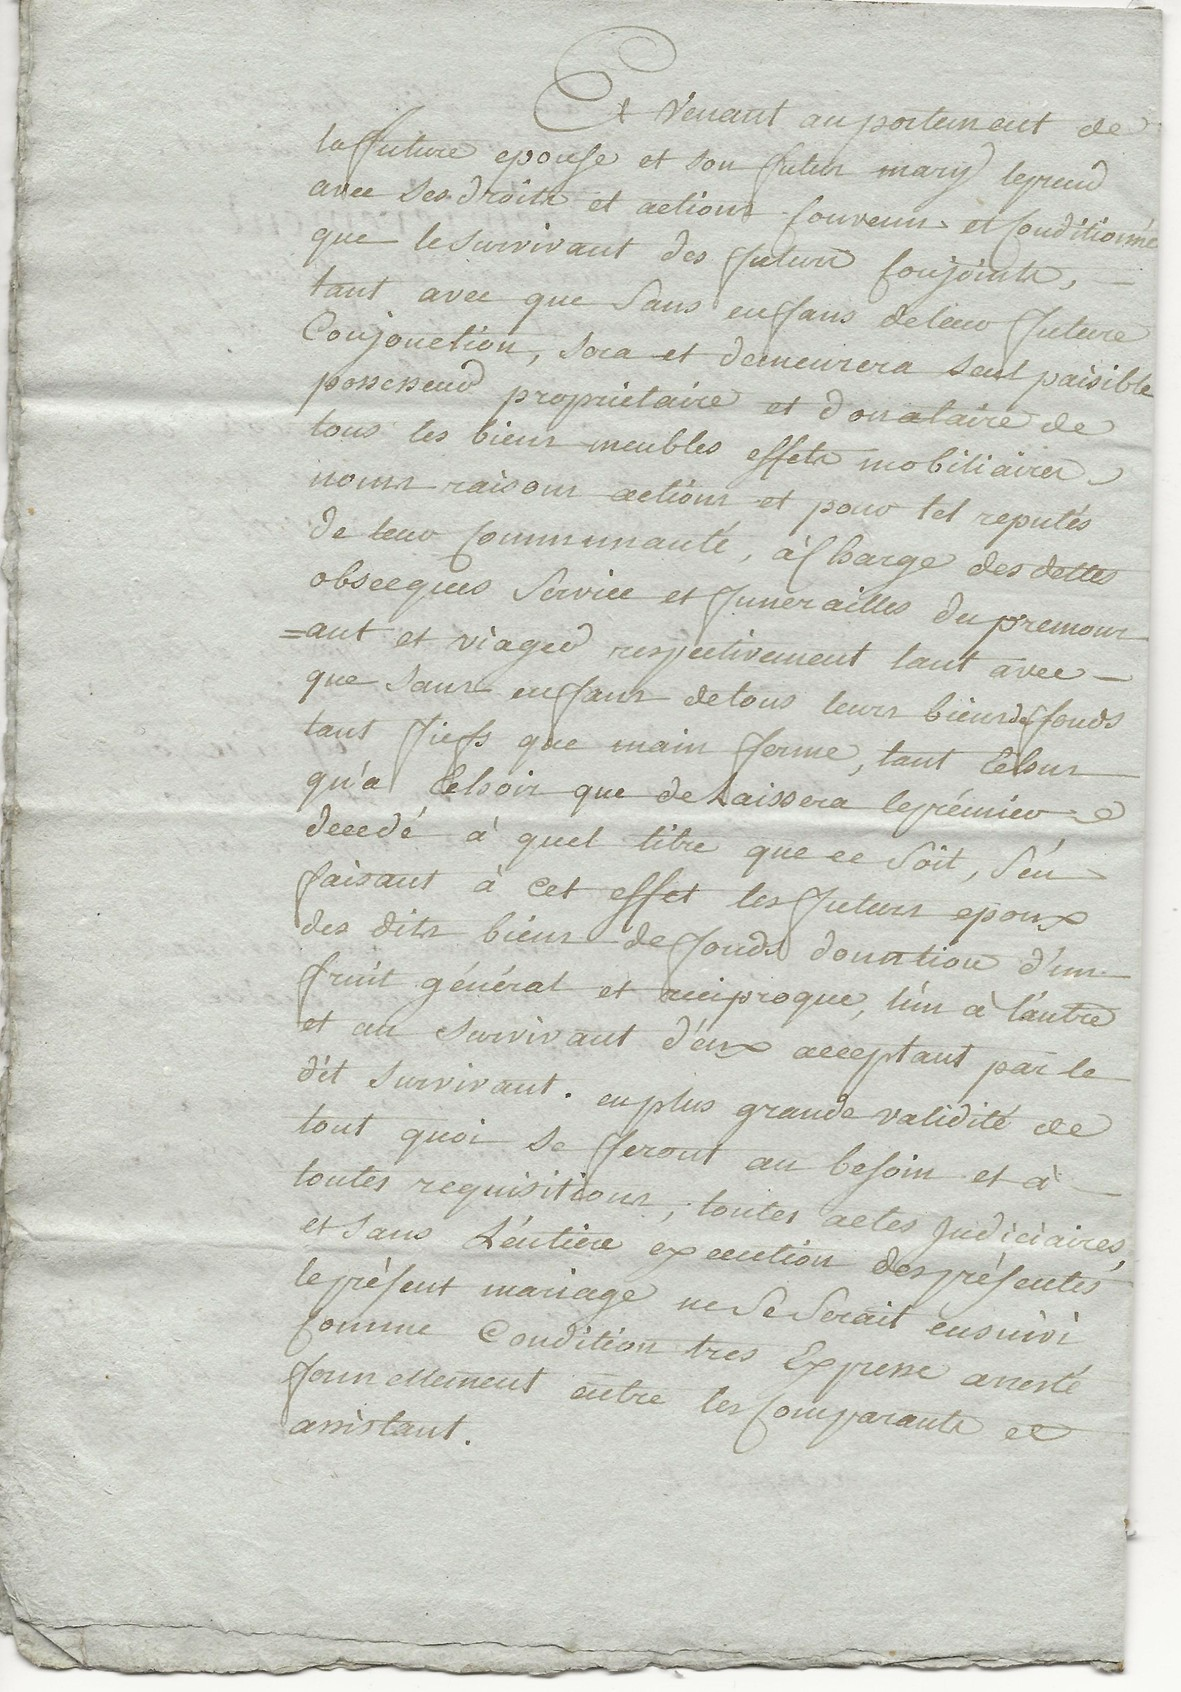 1788 contrat mariage seraphin taine x anne leduc 006